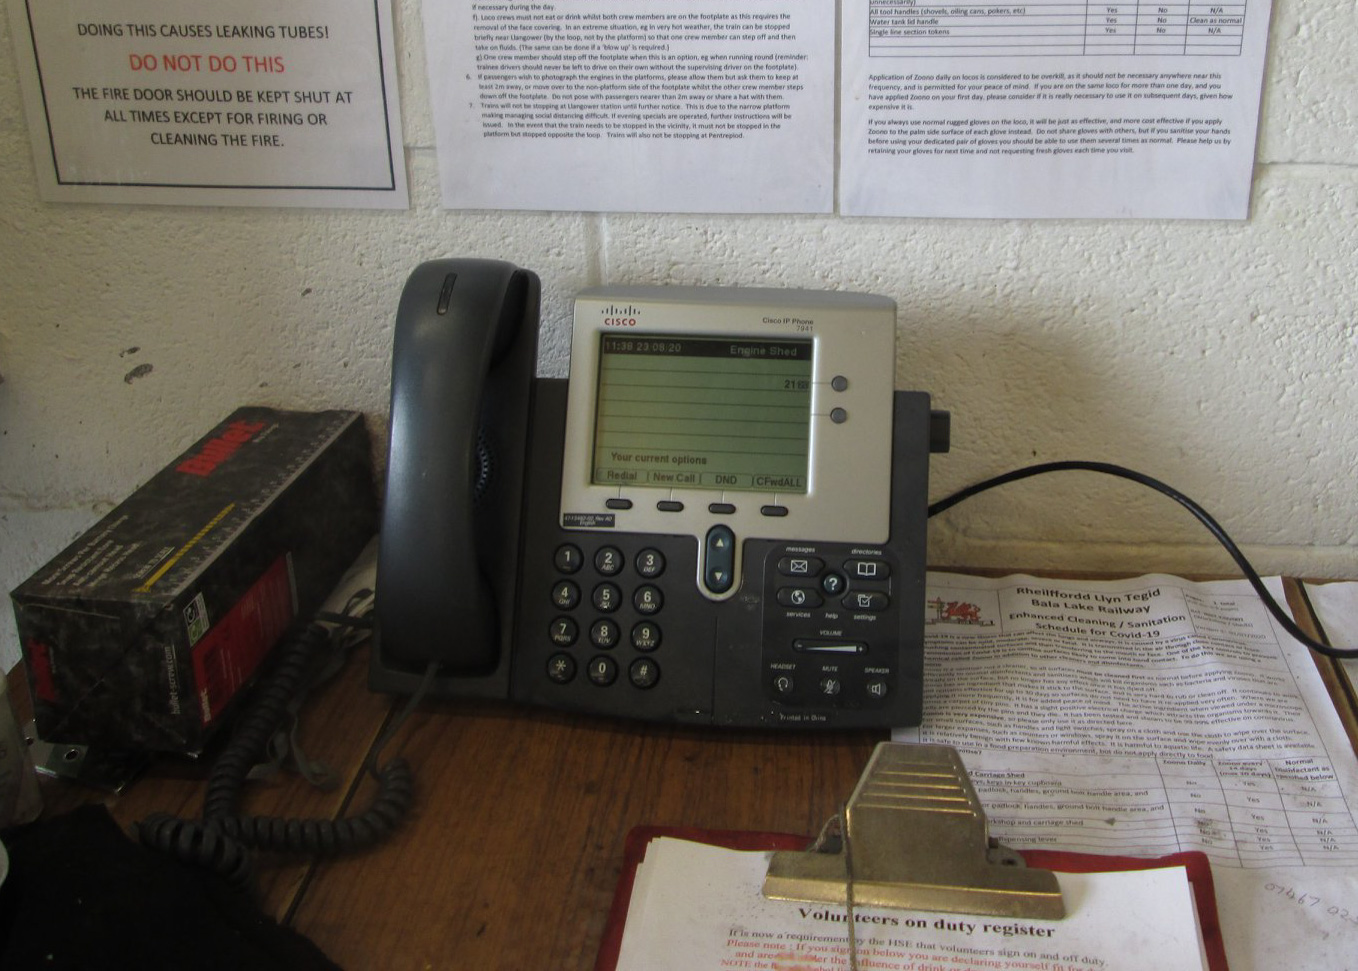 New Engne Shed phone